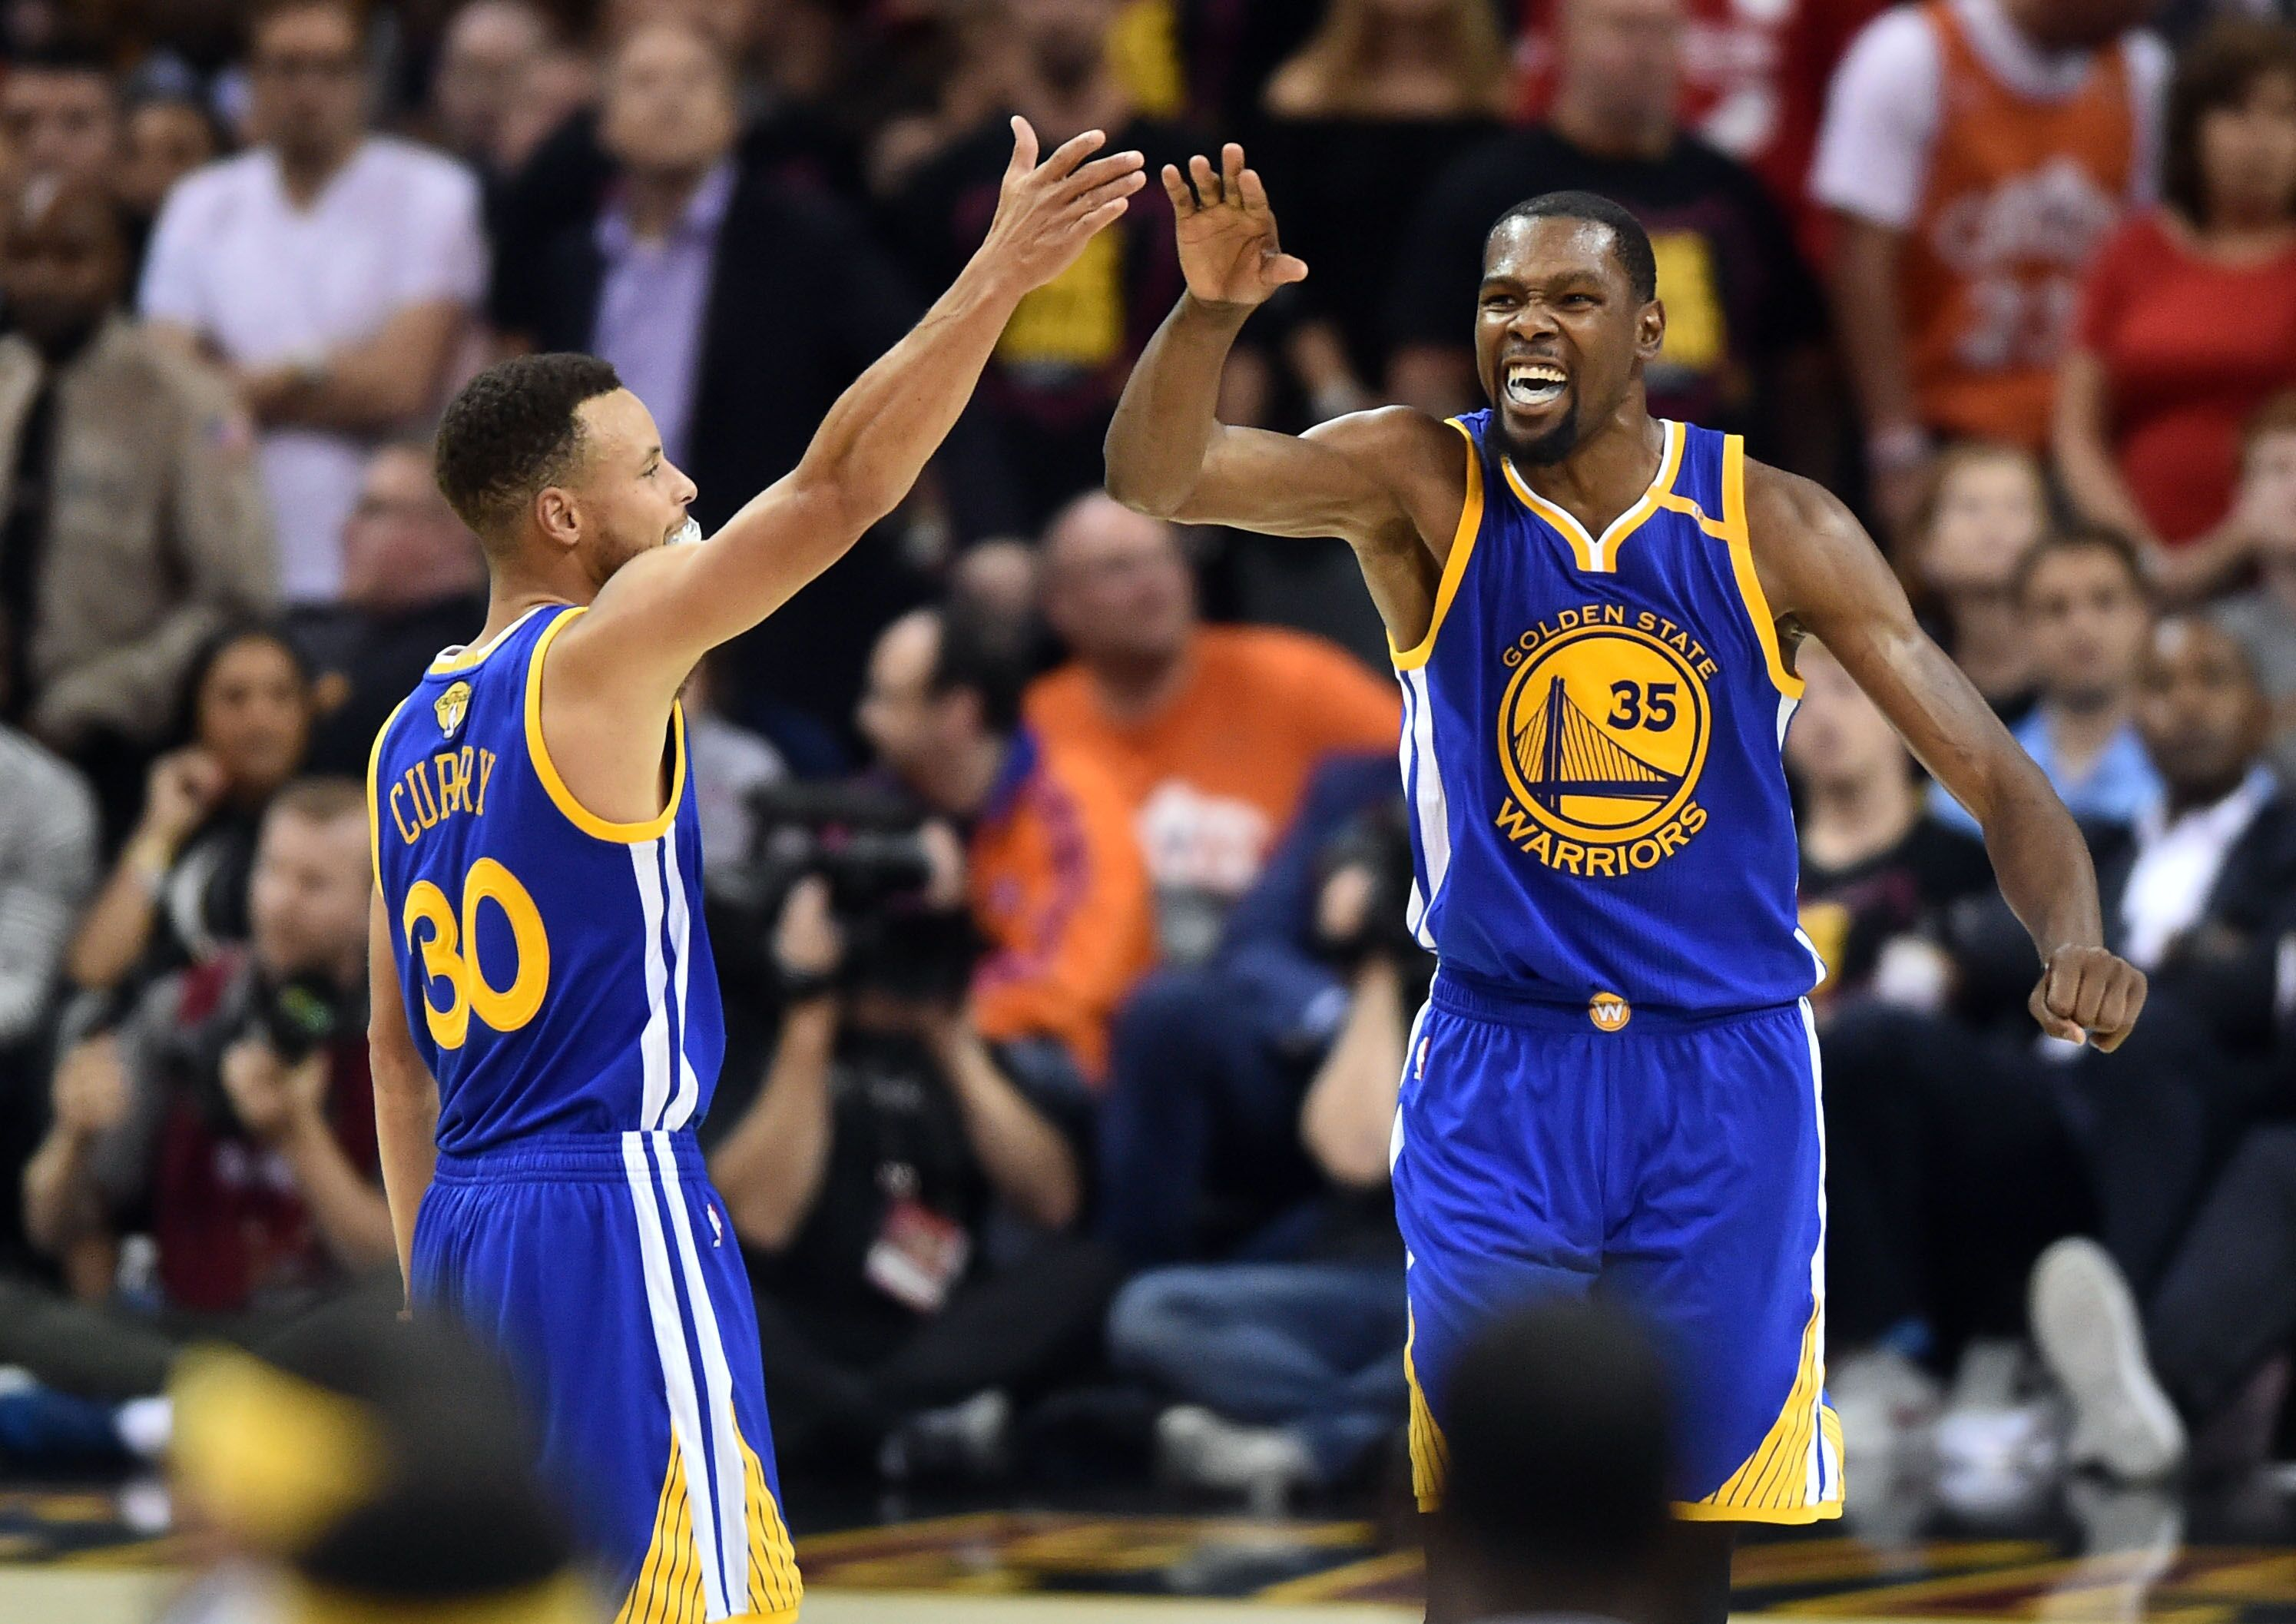 Jeopardy trolls Kevin Durant about his move to Golden State